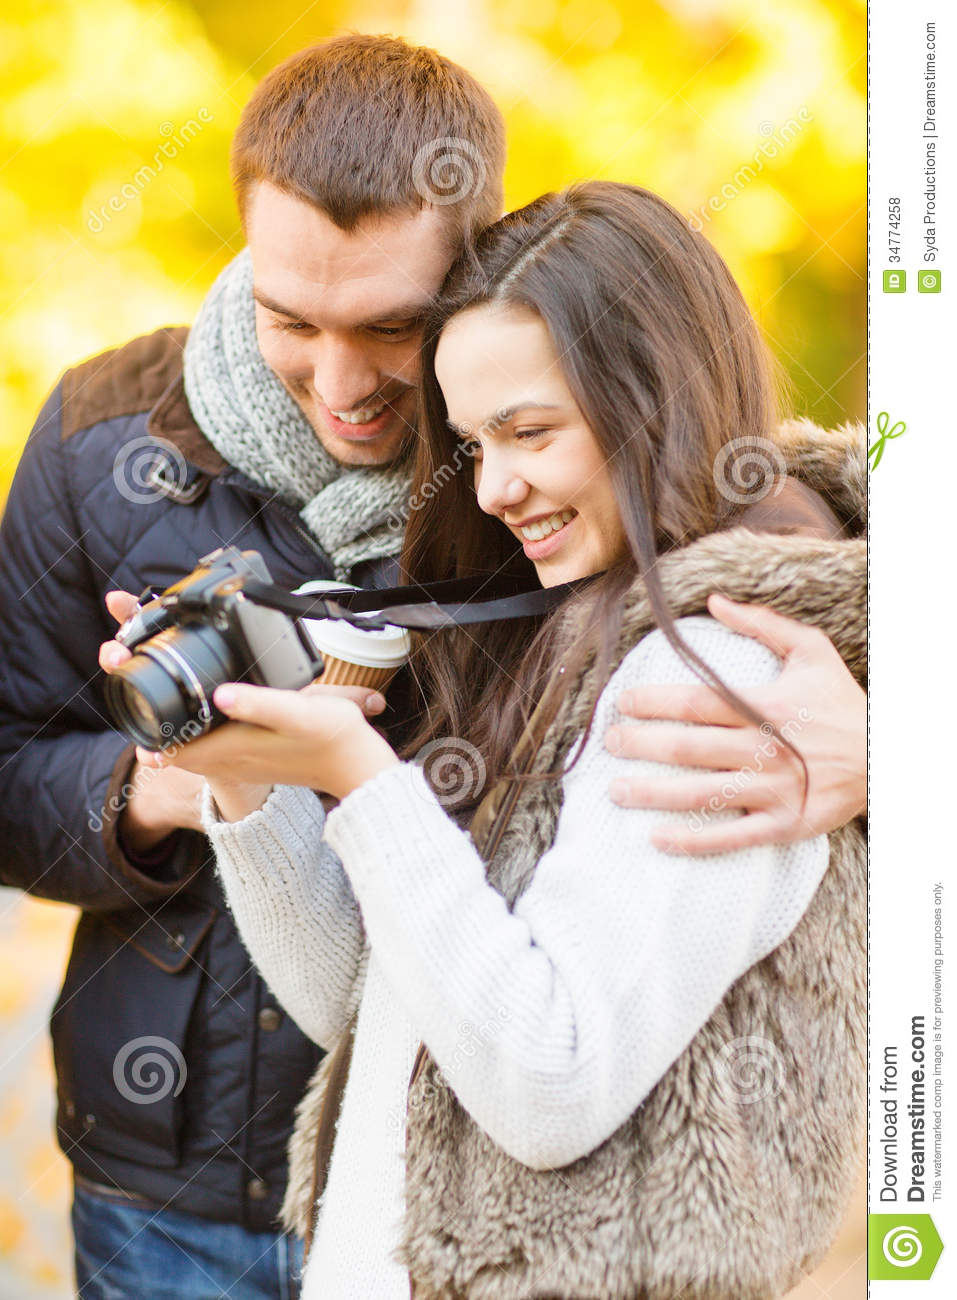 Dating couple photography